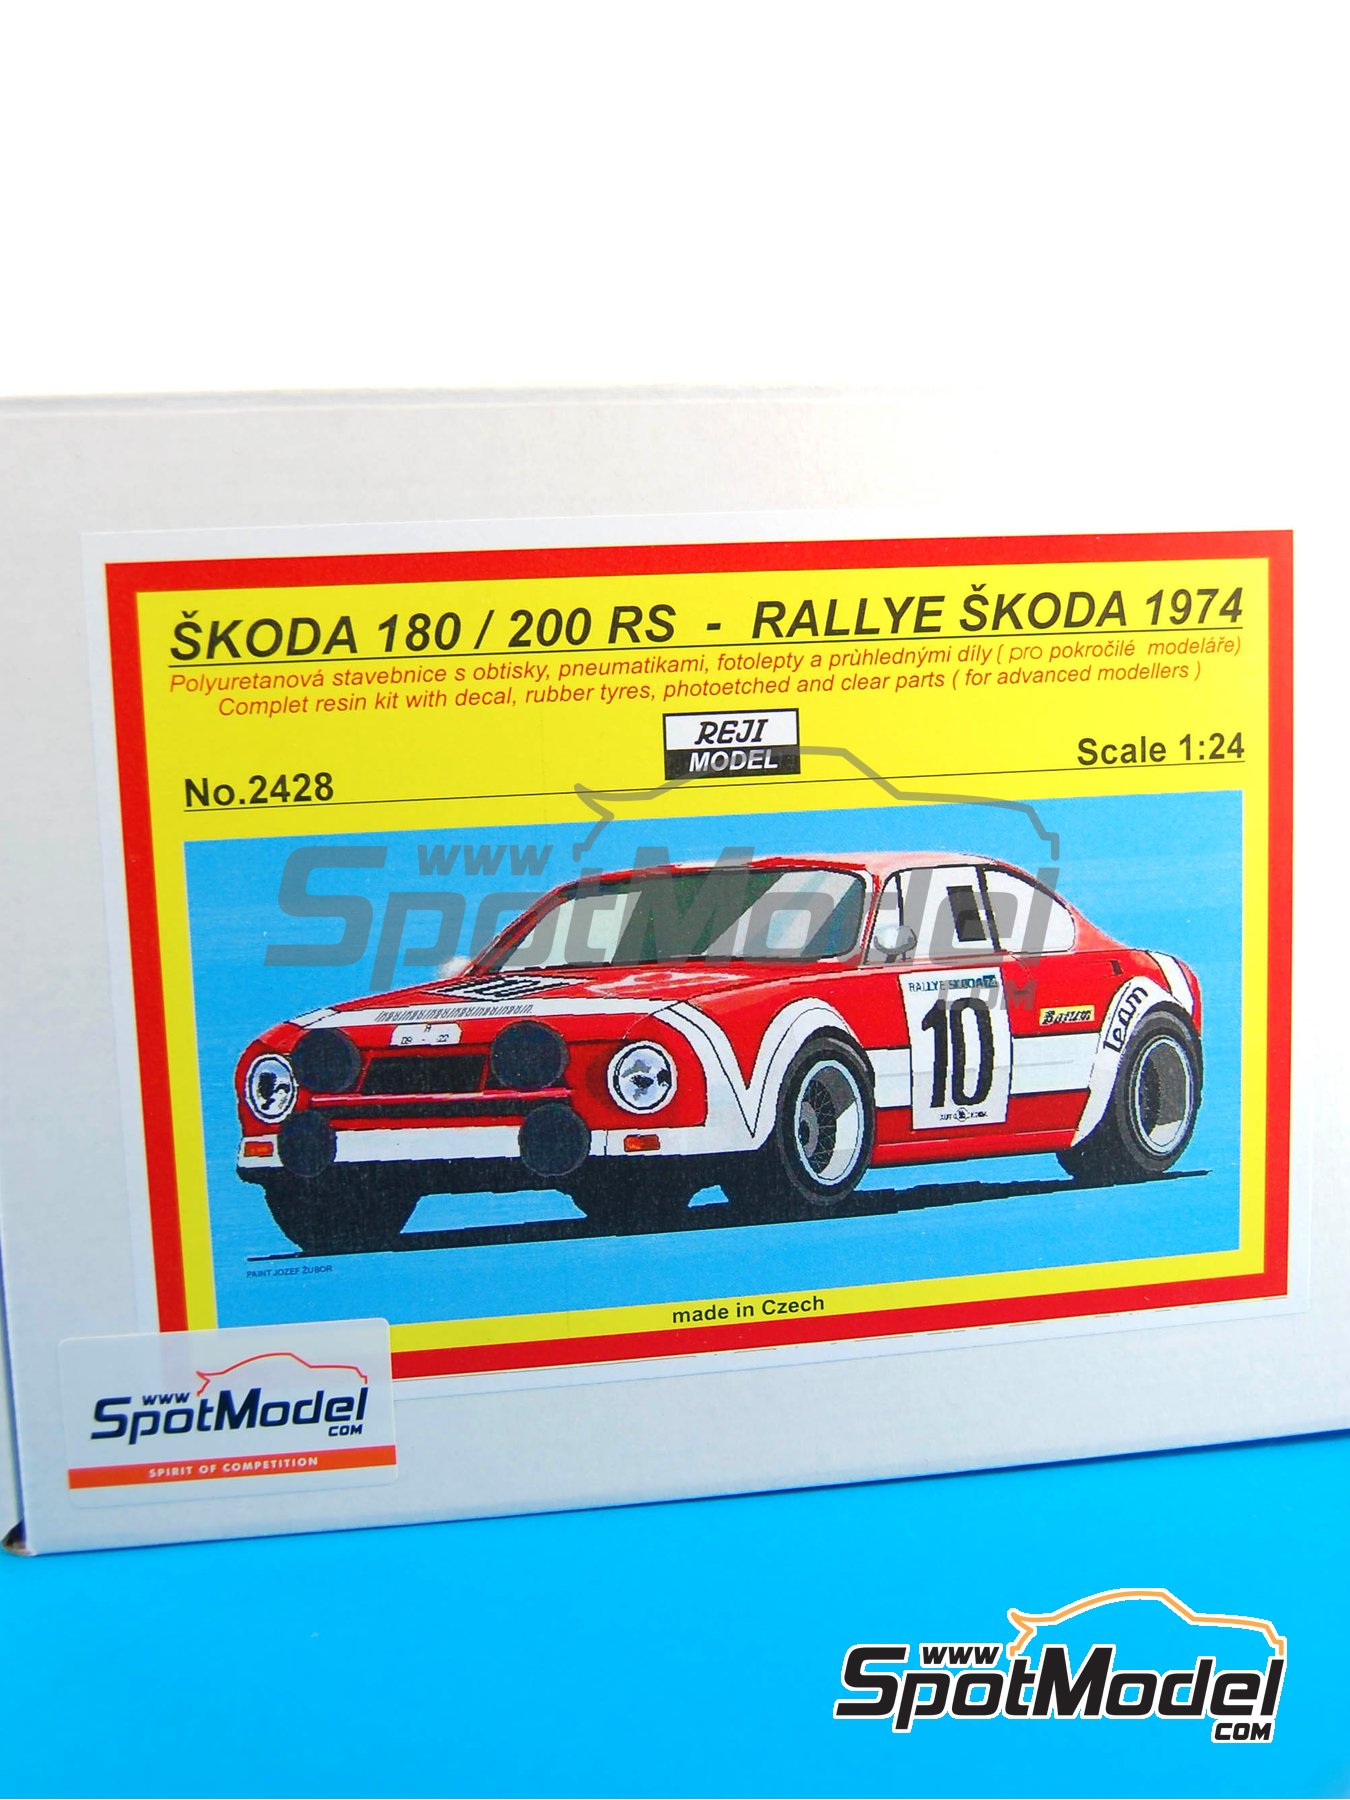 Skoda 180 / 200 RS - Rally Skoda 1974 | Car kit in 1/24 scale manufactured by Reji Model (ref. REJI-2428) image